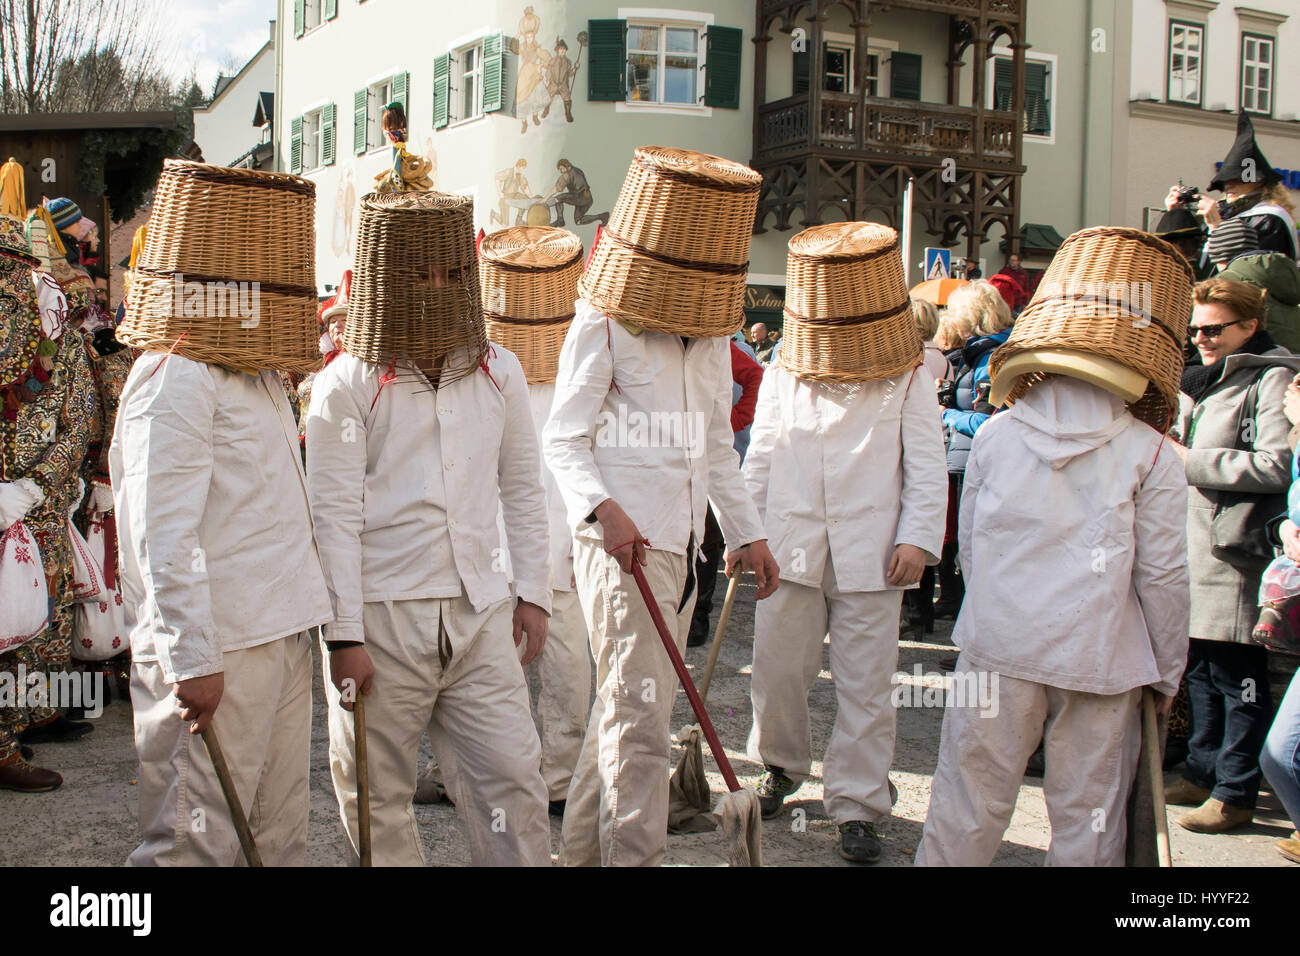 Aussee Carnival, men in white suits, even Pless, woven baskets on heads, Bad Aussee, Styria, Austria - Stock Image